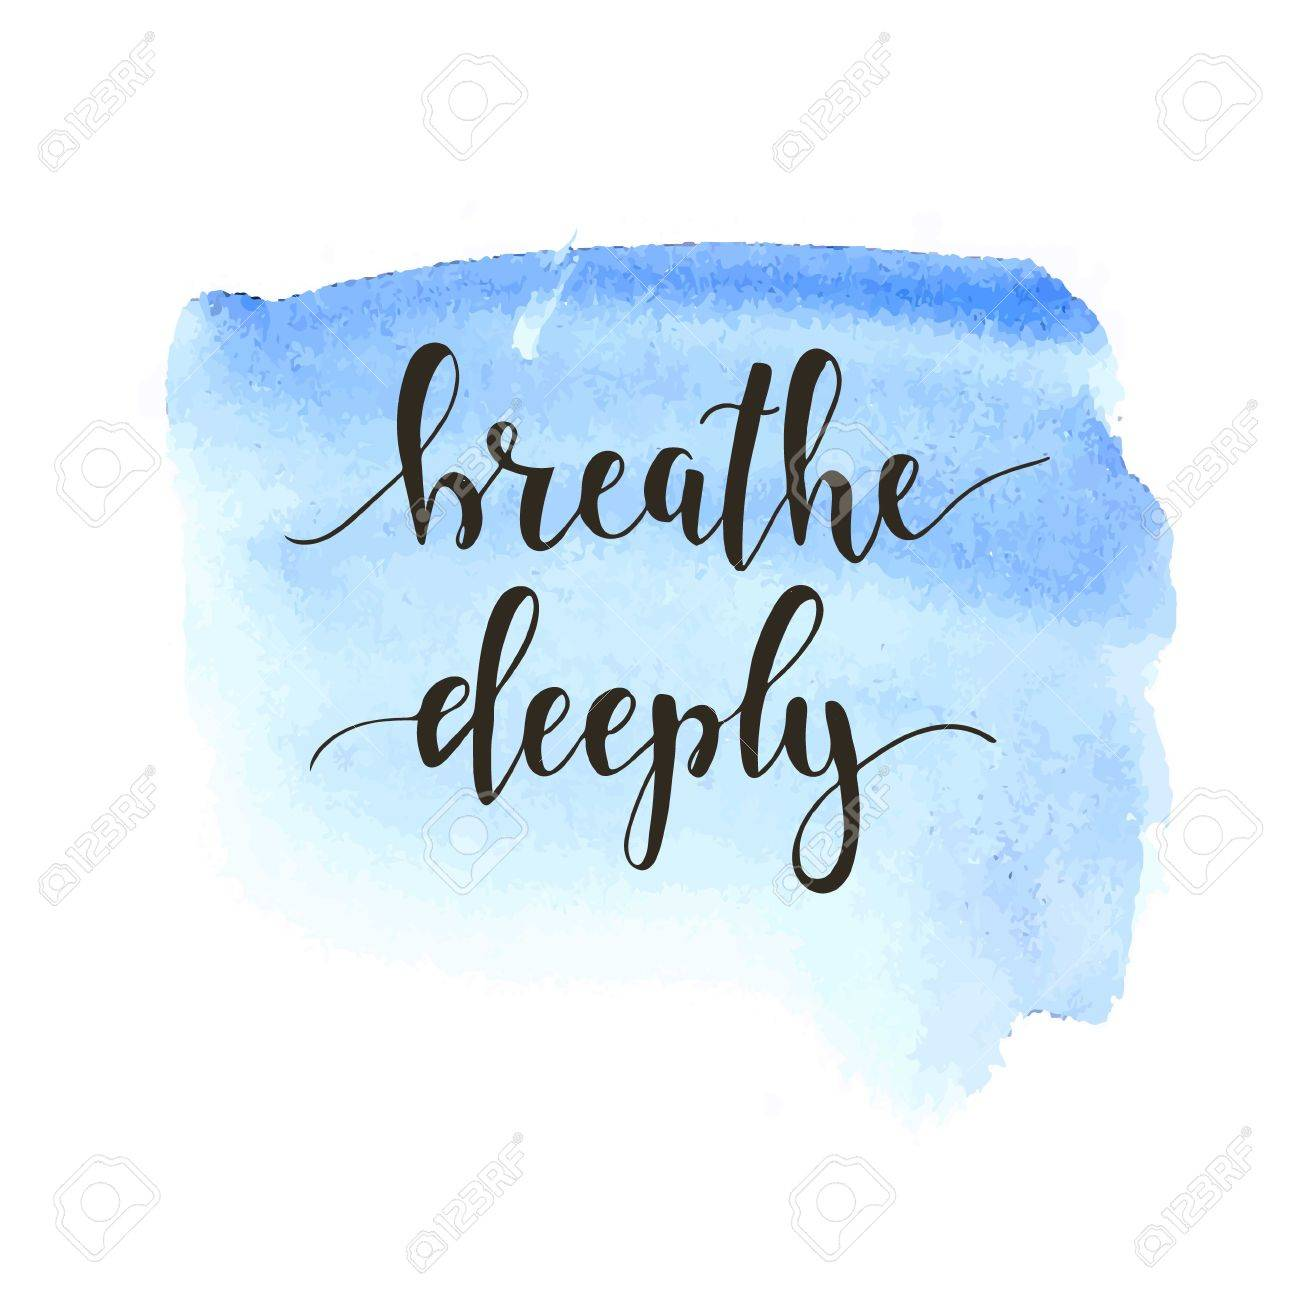 Breathe Deeply. T-shirt hand lettered calligraphic design. Inspirational vector typography. Vector illustration. - 55642729